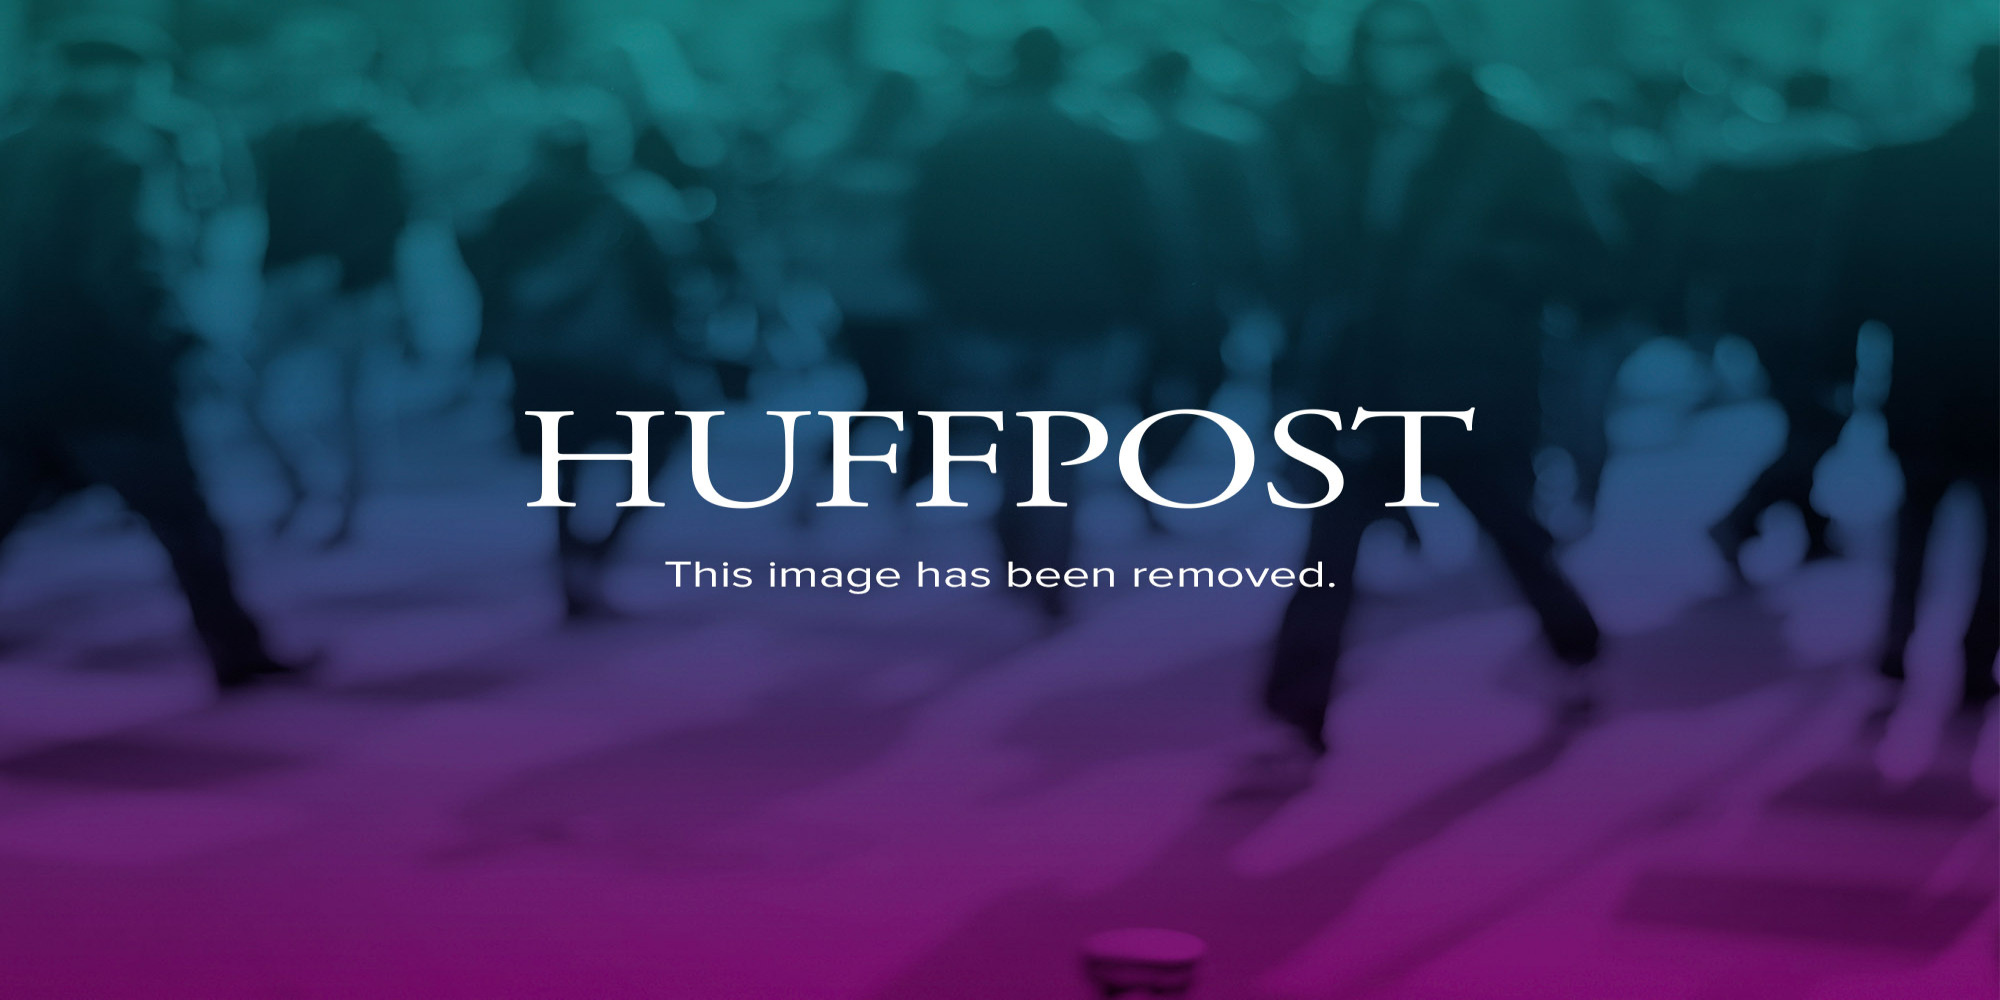 https://i1.wp.com/i.huffpost.com/gen/1784494/images/o-BOKO-HARAM-KIDNAPPED-facebook.jpg